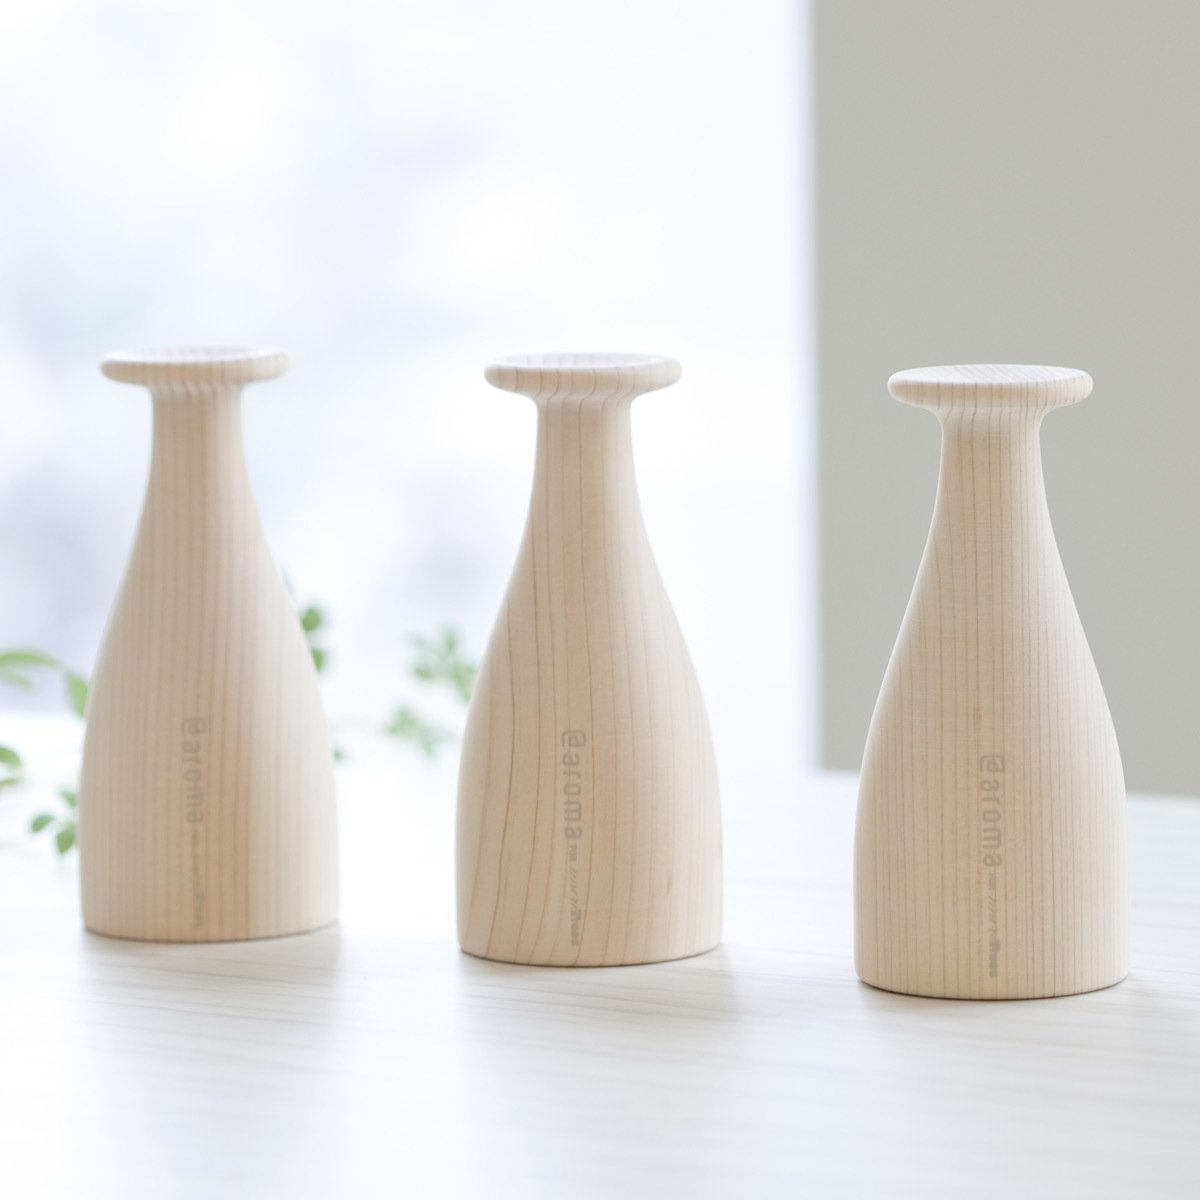 Hinoki Aroma Scent Diffuser Stand by At-Aroma (Image #4)